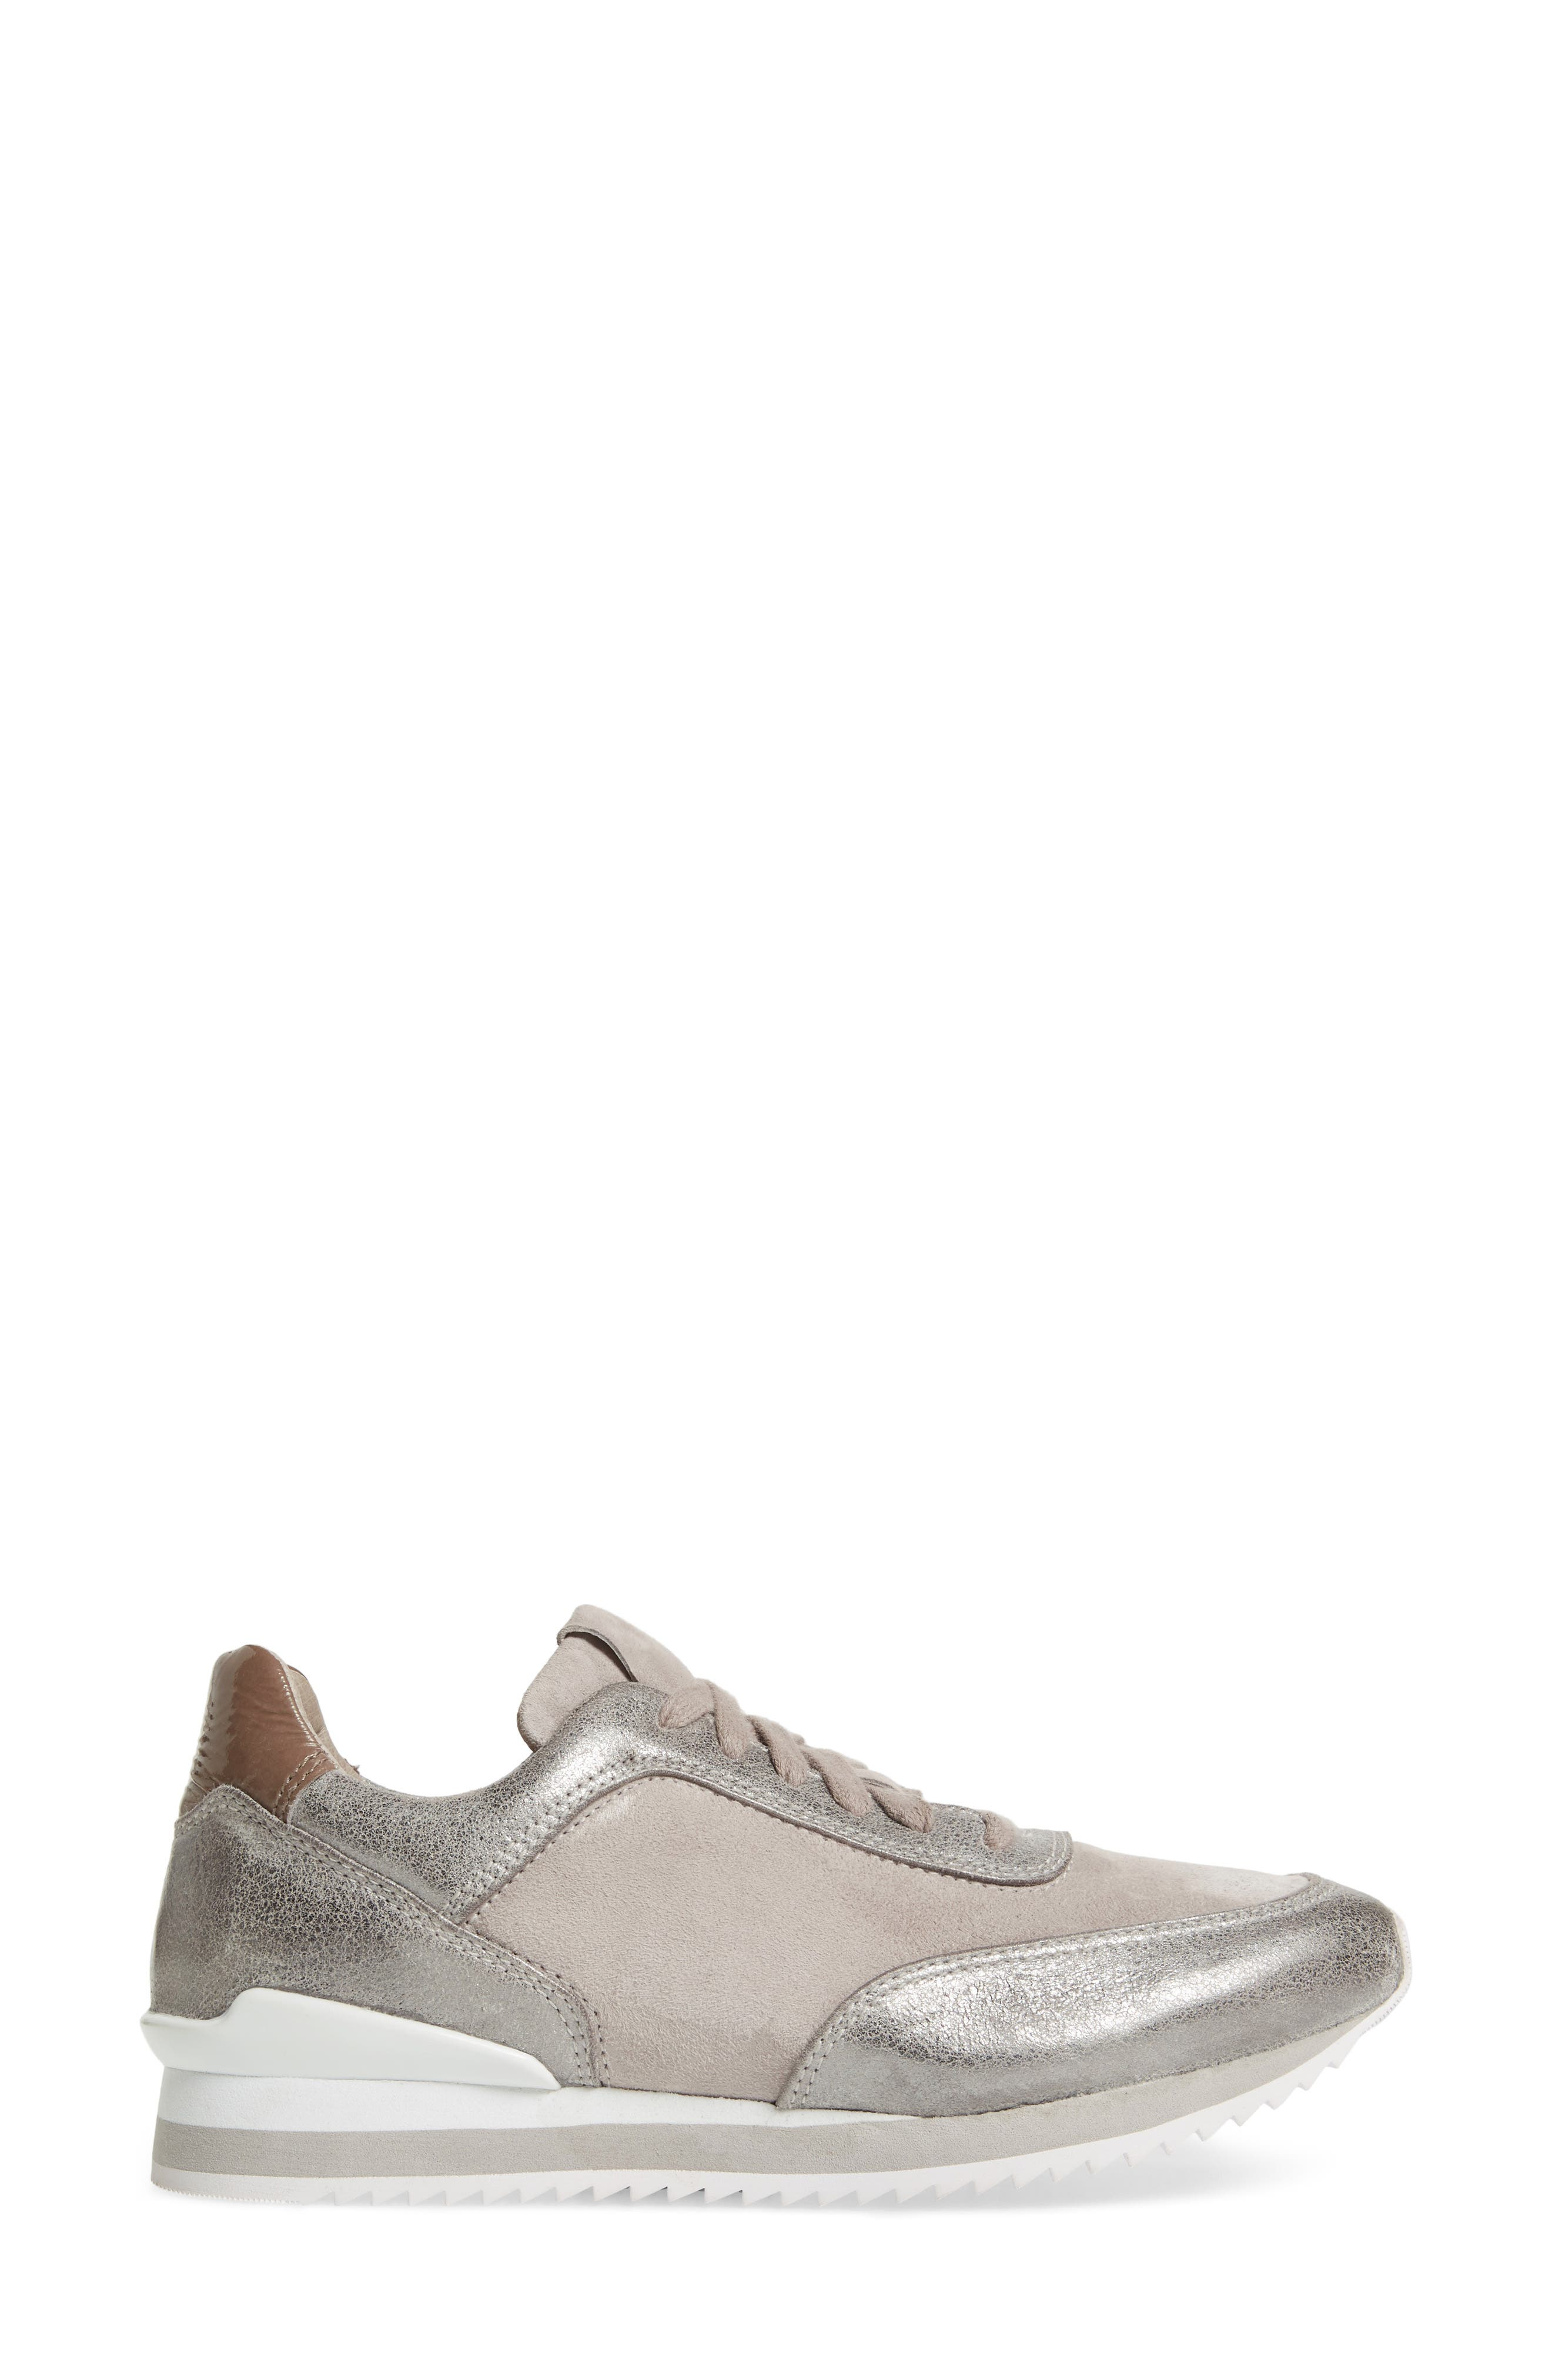 Jules Sneaker,                             Alternate thumbnail 3, color,                             PEWTER LEATHER/ SUEDE